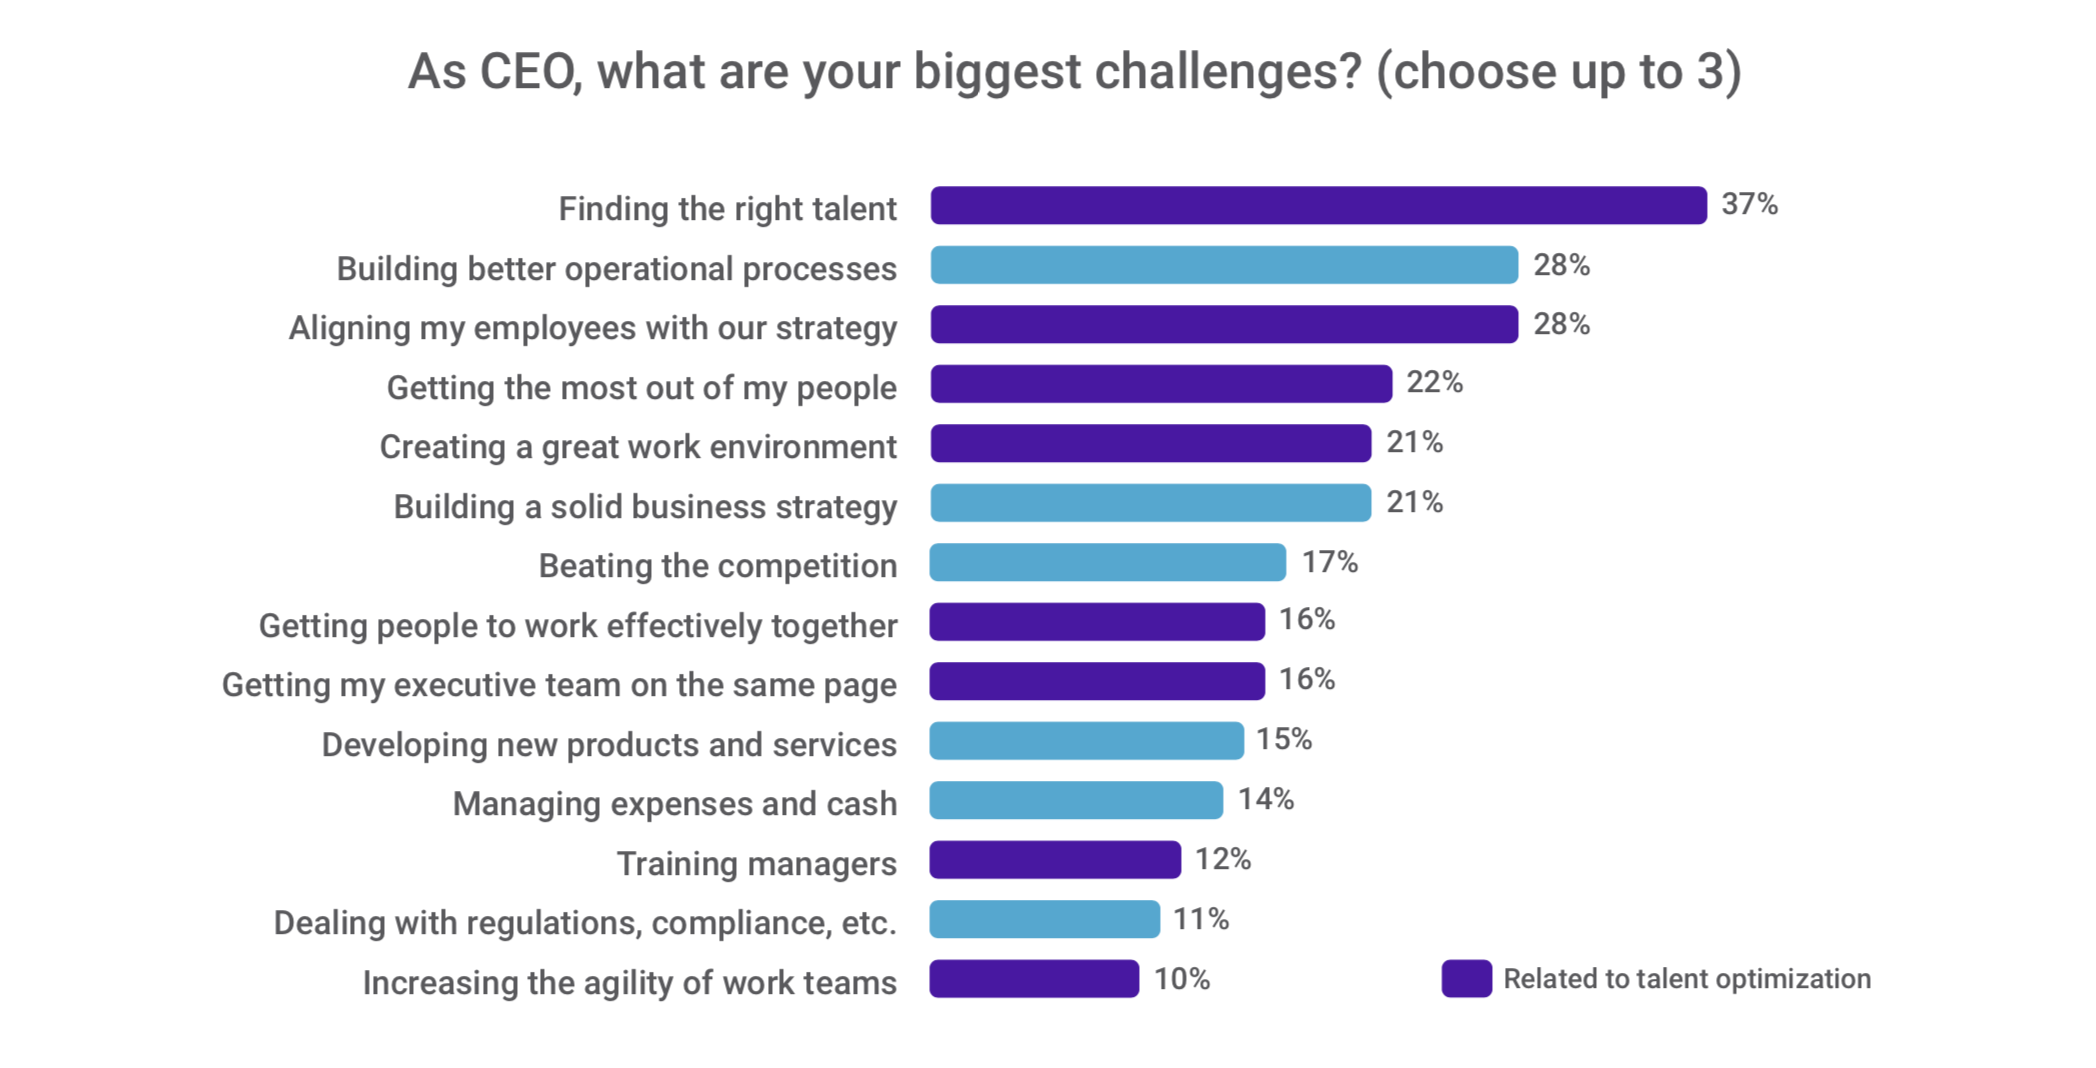 Finding the right talent is top CEO challenge